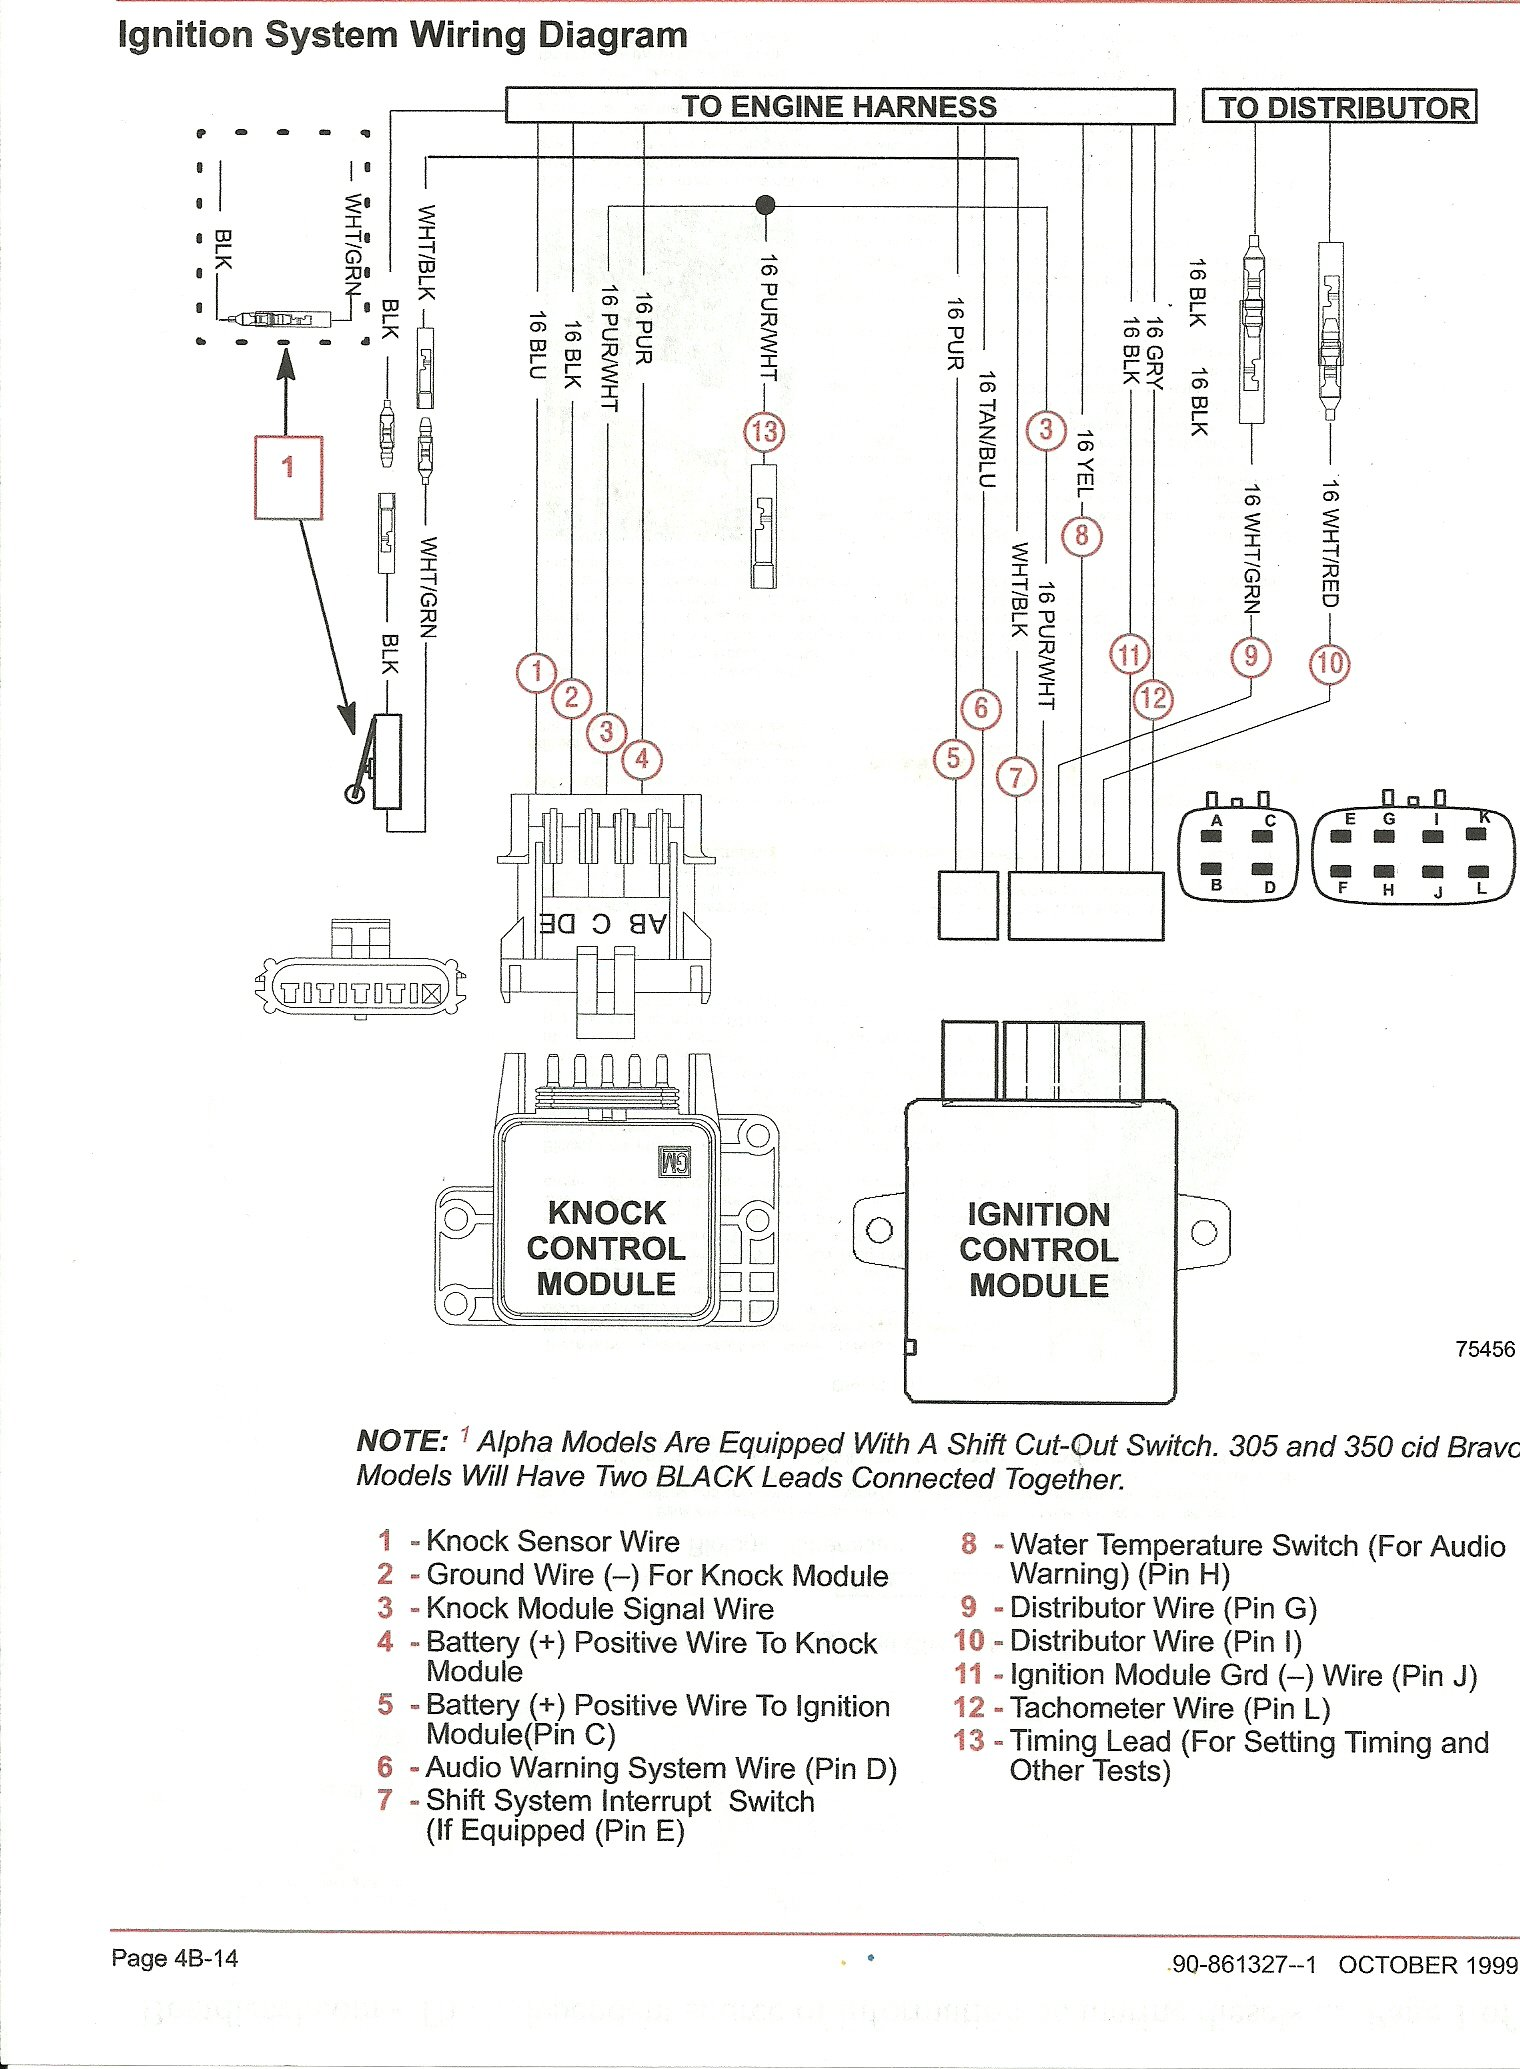 1990 mercruiser trim wiring diagram 1990 get free image about wiring diagram